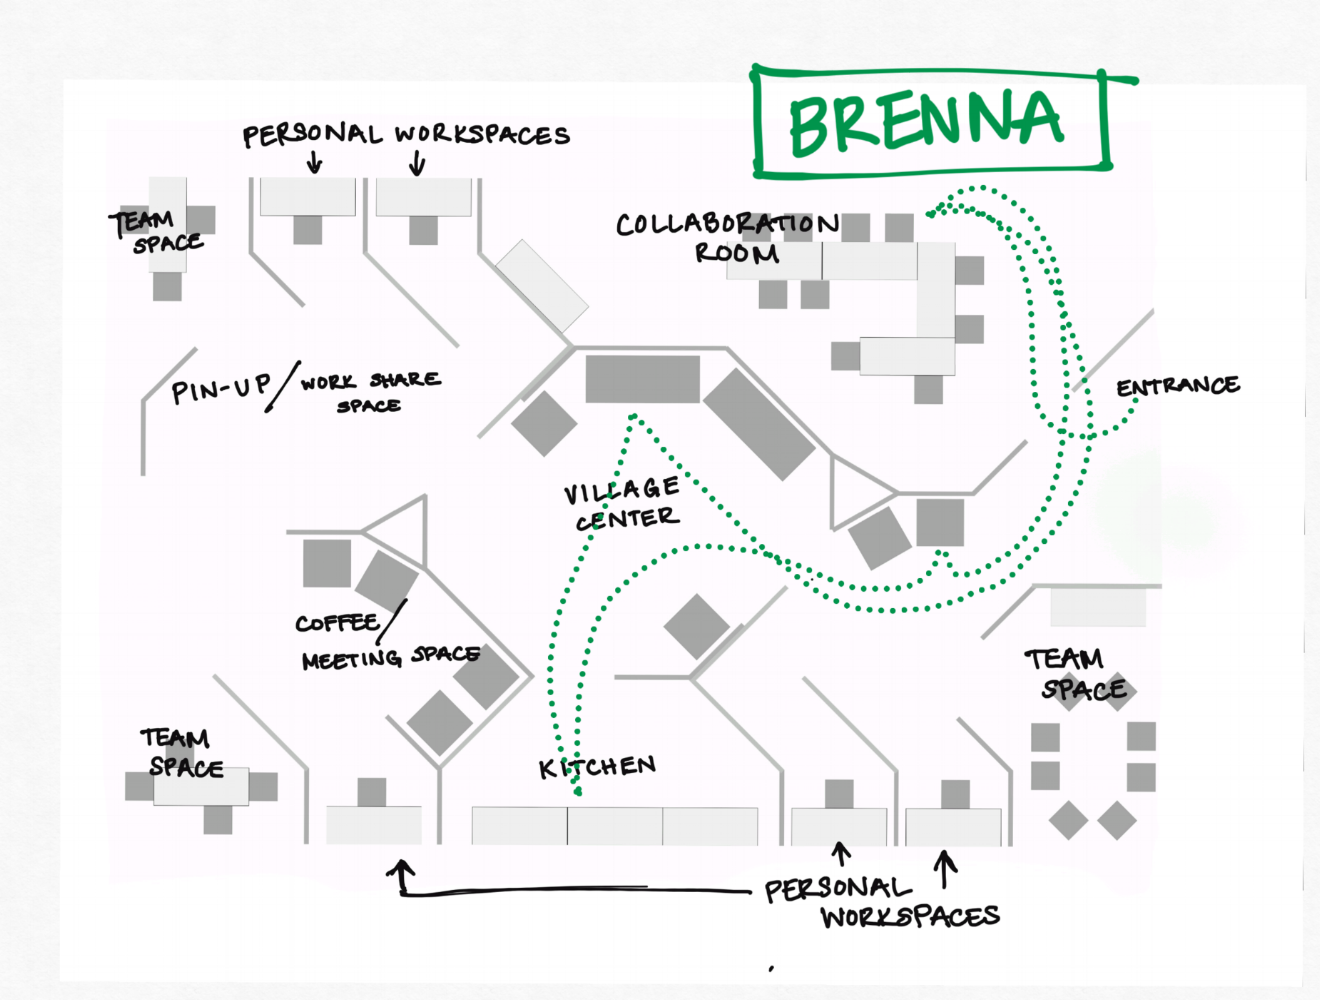 Brenna likes to work around others. She likes lots of space to spread out on large tables. She likes to take breaks alone to think or breaks with others for fun. She eats lunch in the village center with others.